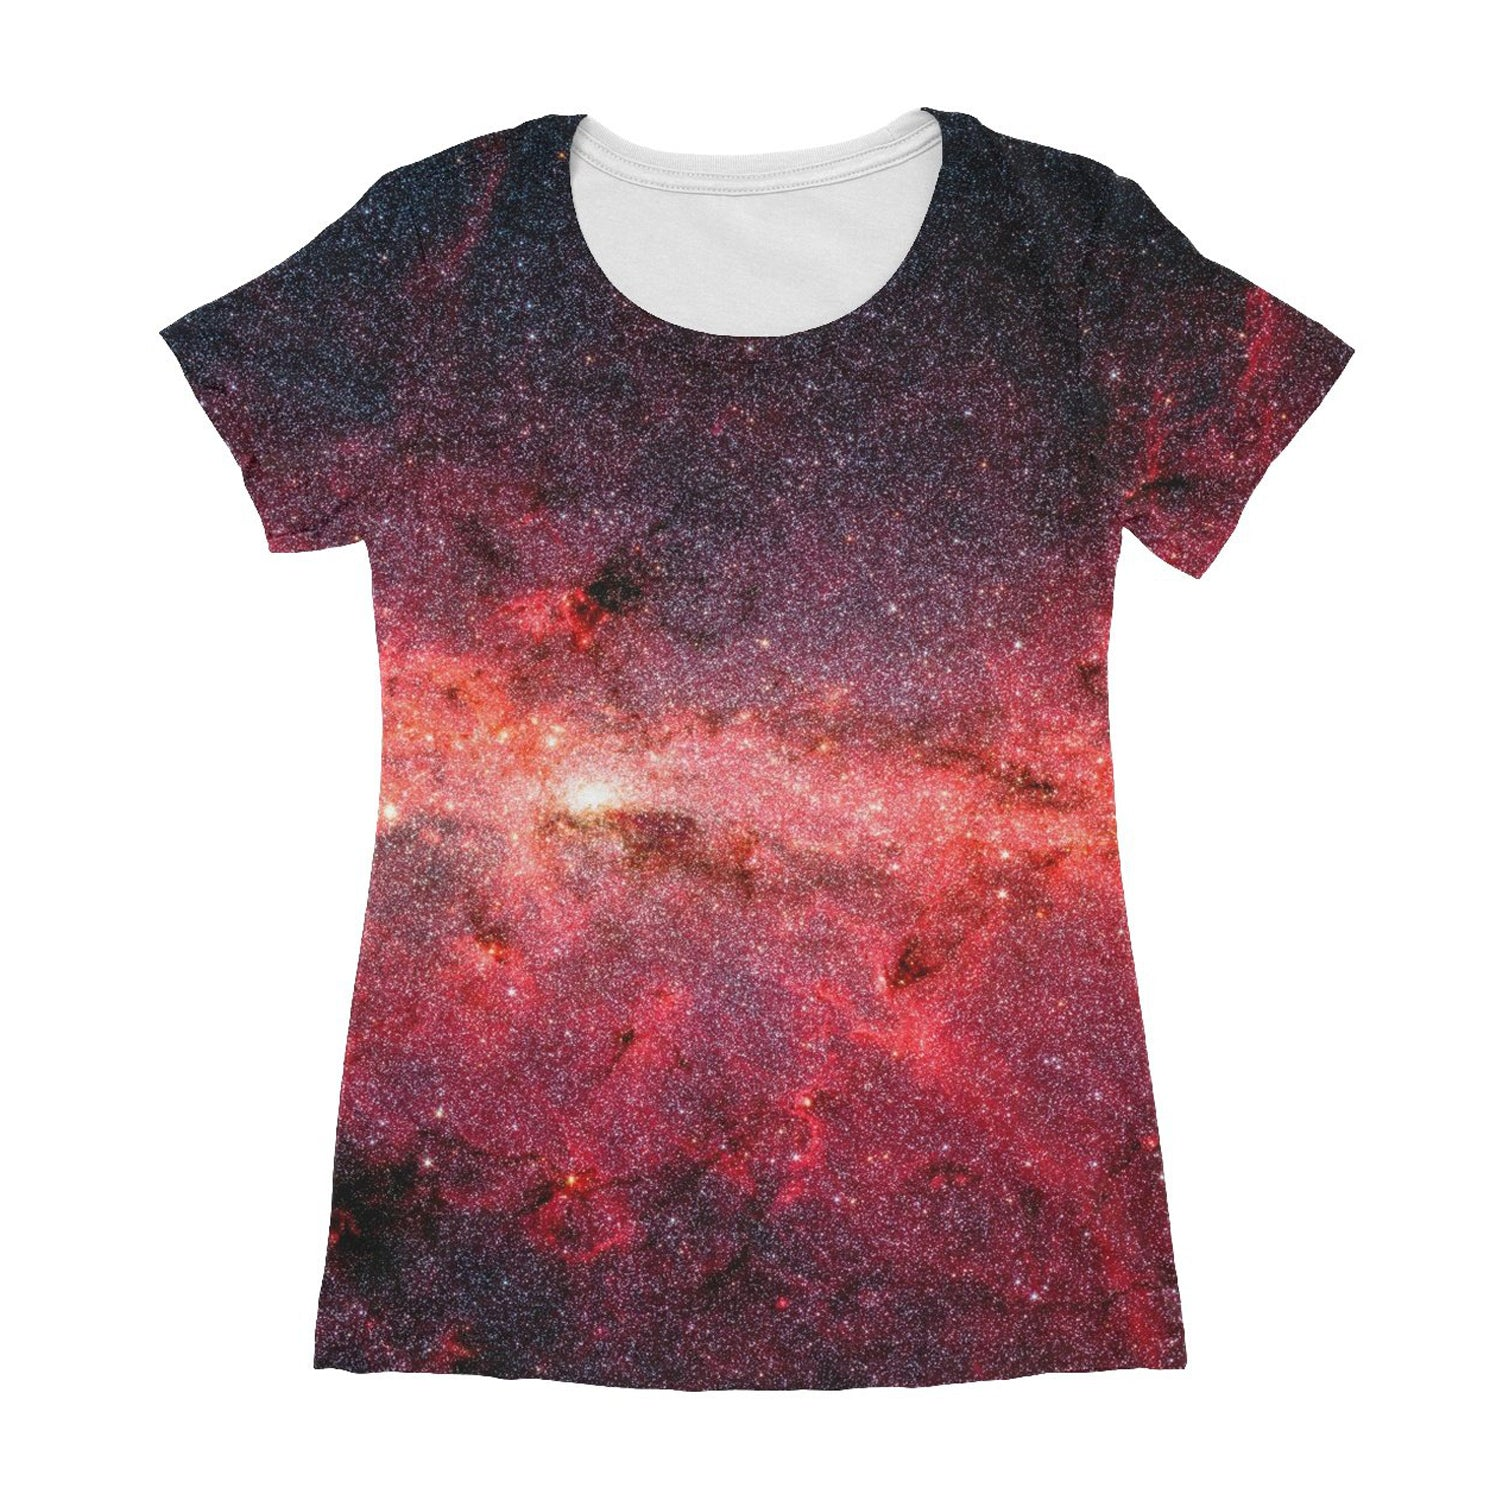 the front of an unusual teeshirt for women showing the milky way in infrared